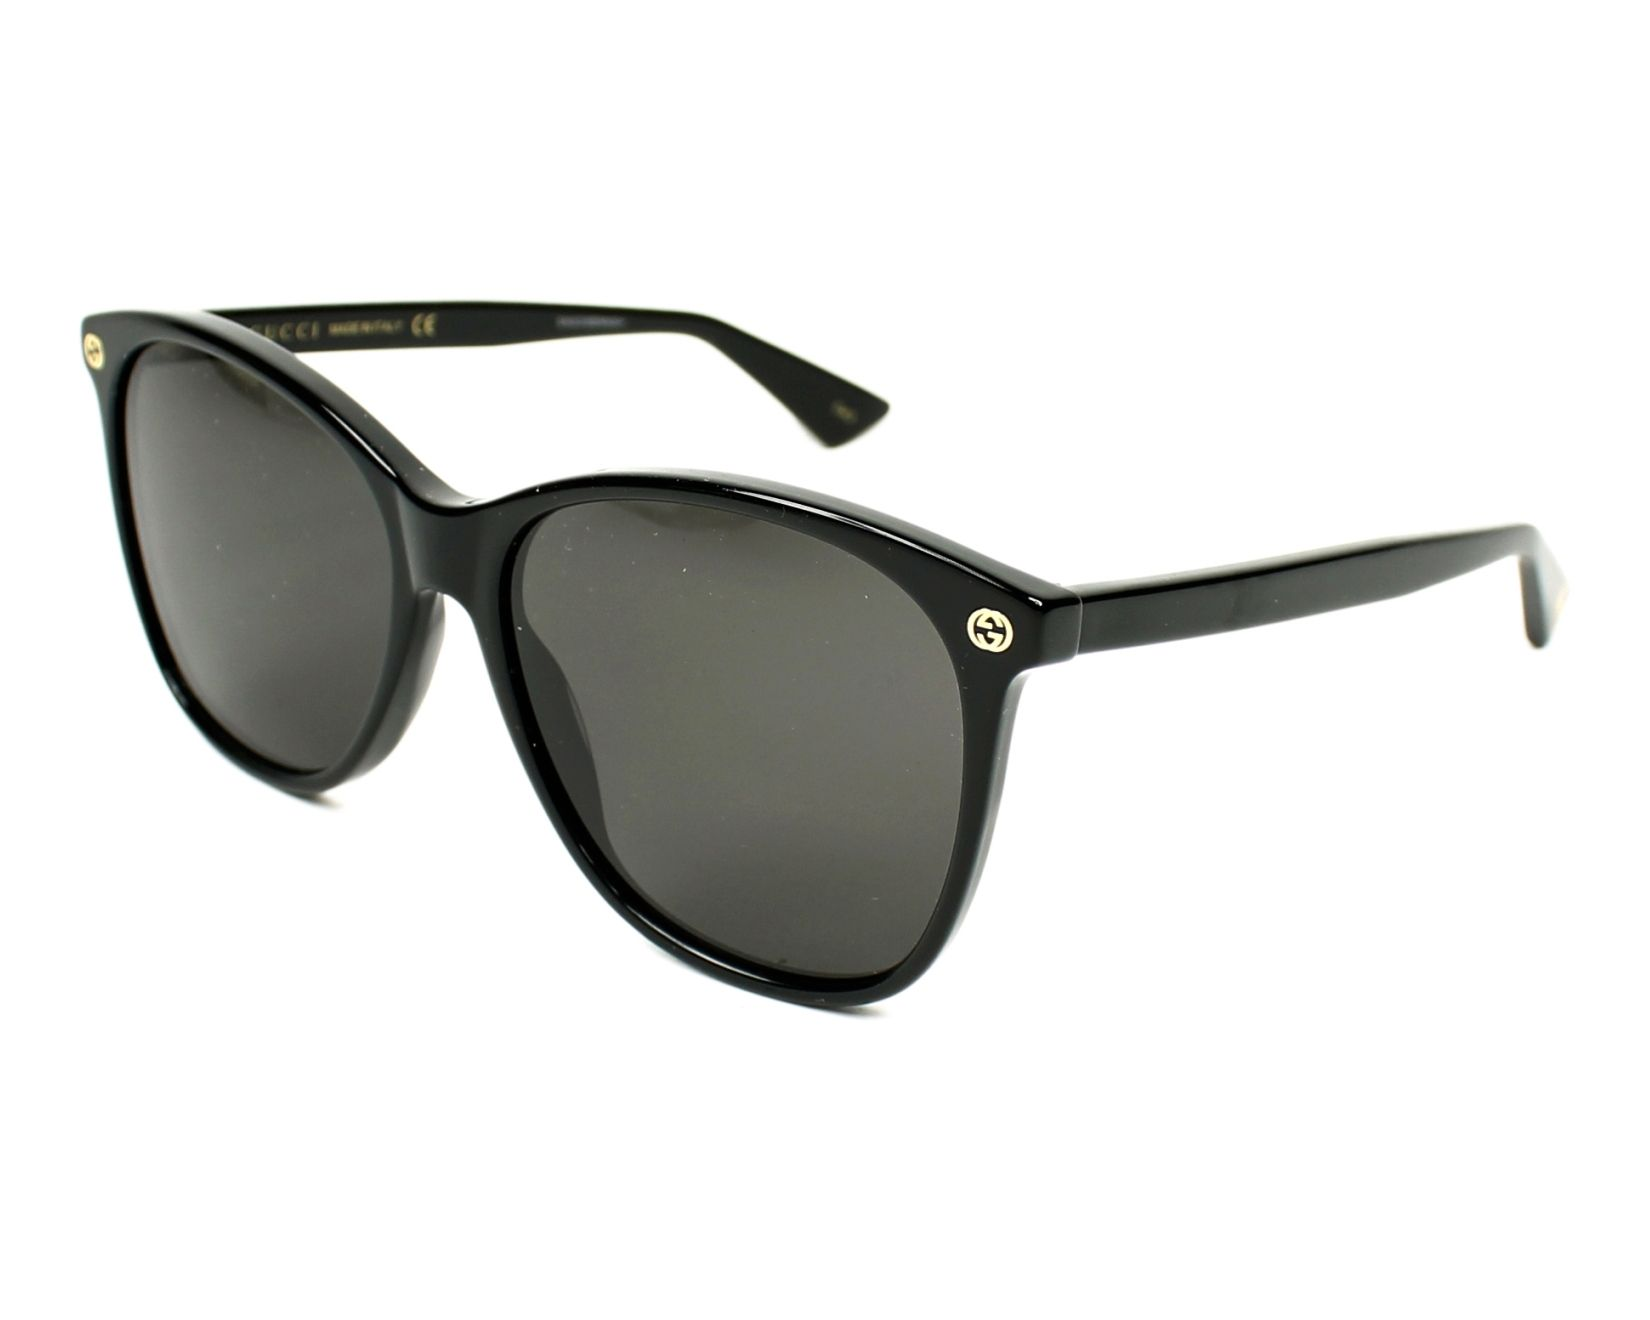 Gucci Sunglasses Black with Grey Lenses GG-0024-S 001 - Visionet US